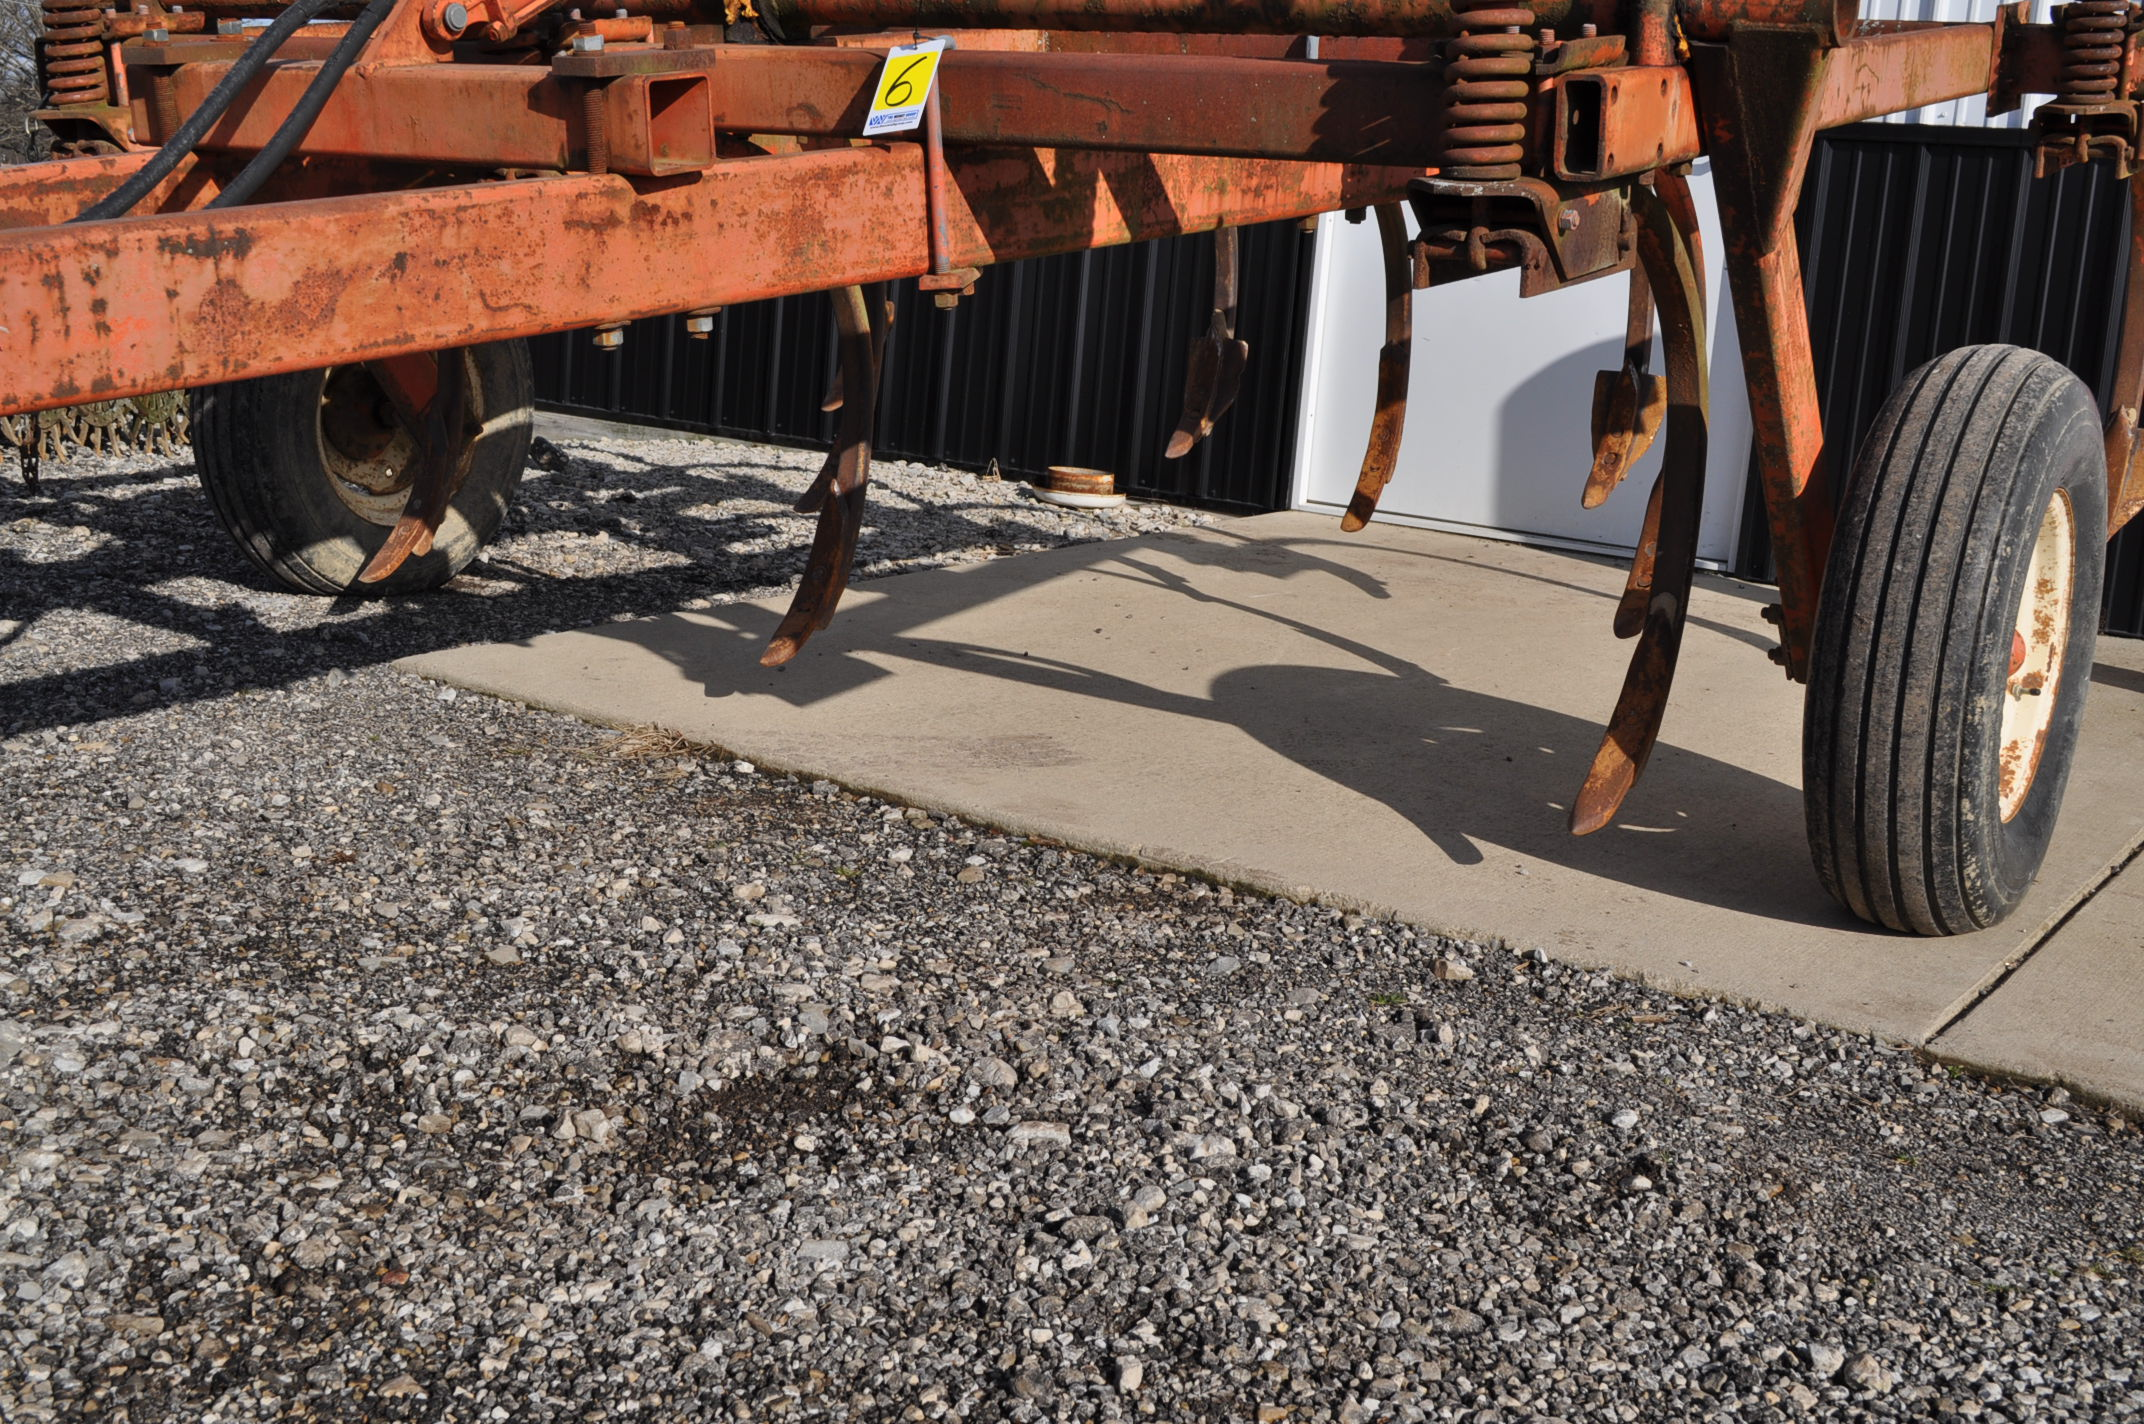 Allis Chalmers chisel plow, 10 shank, hyd raise - Image 5 of 7